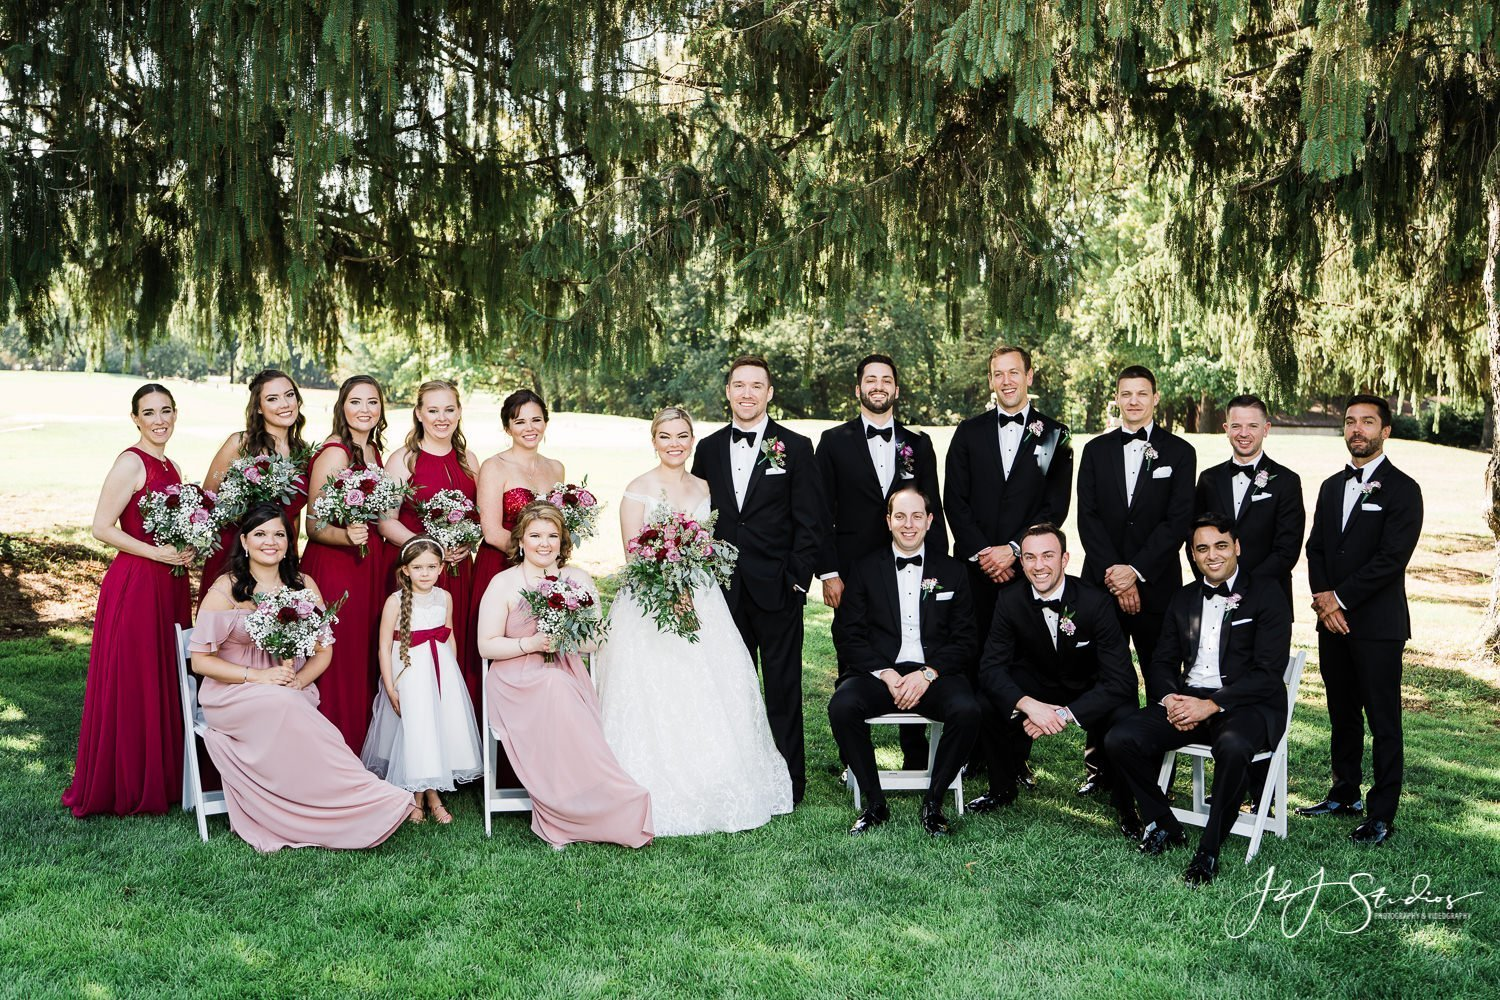 formal bridal party picture entire bridal party